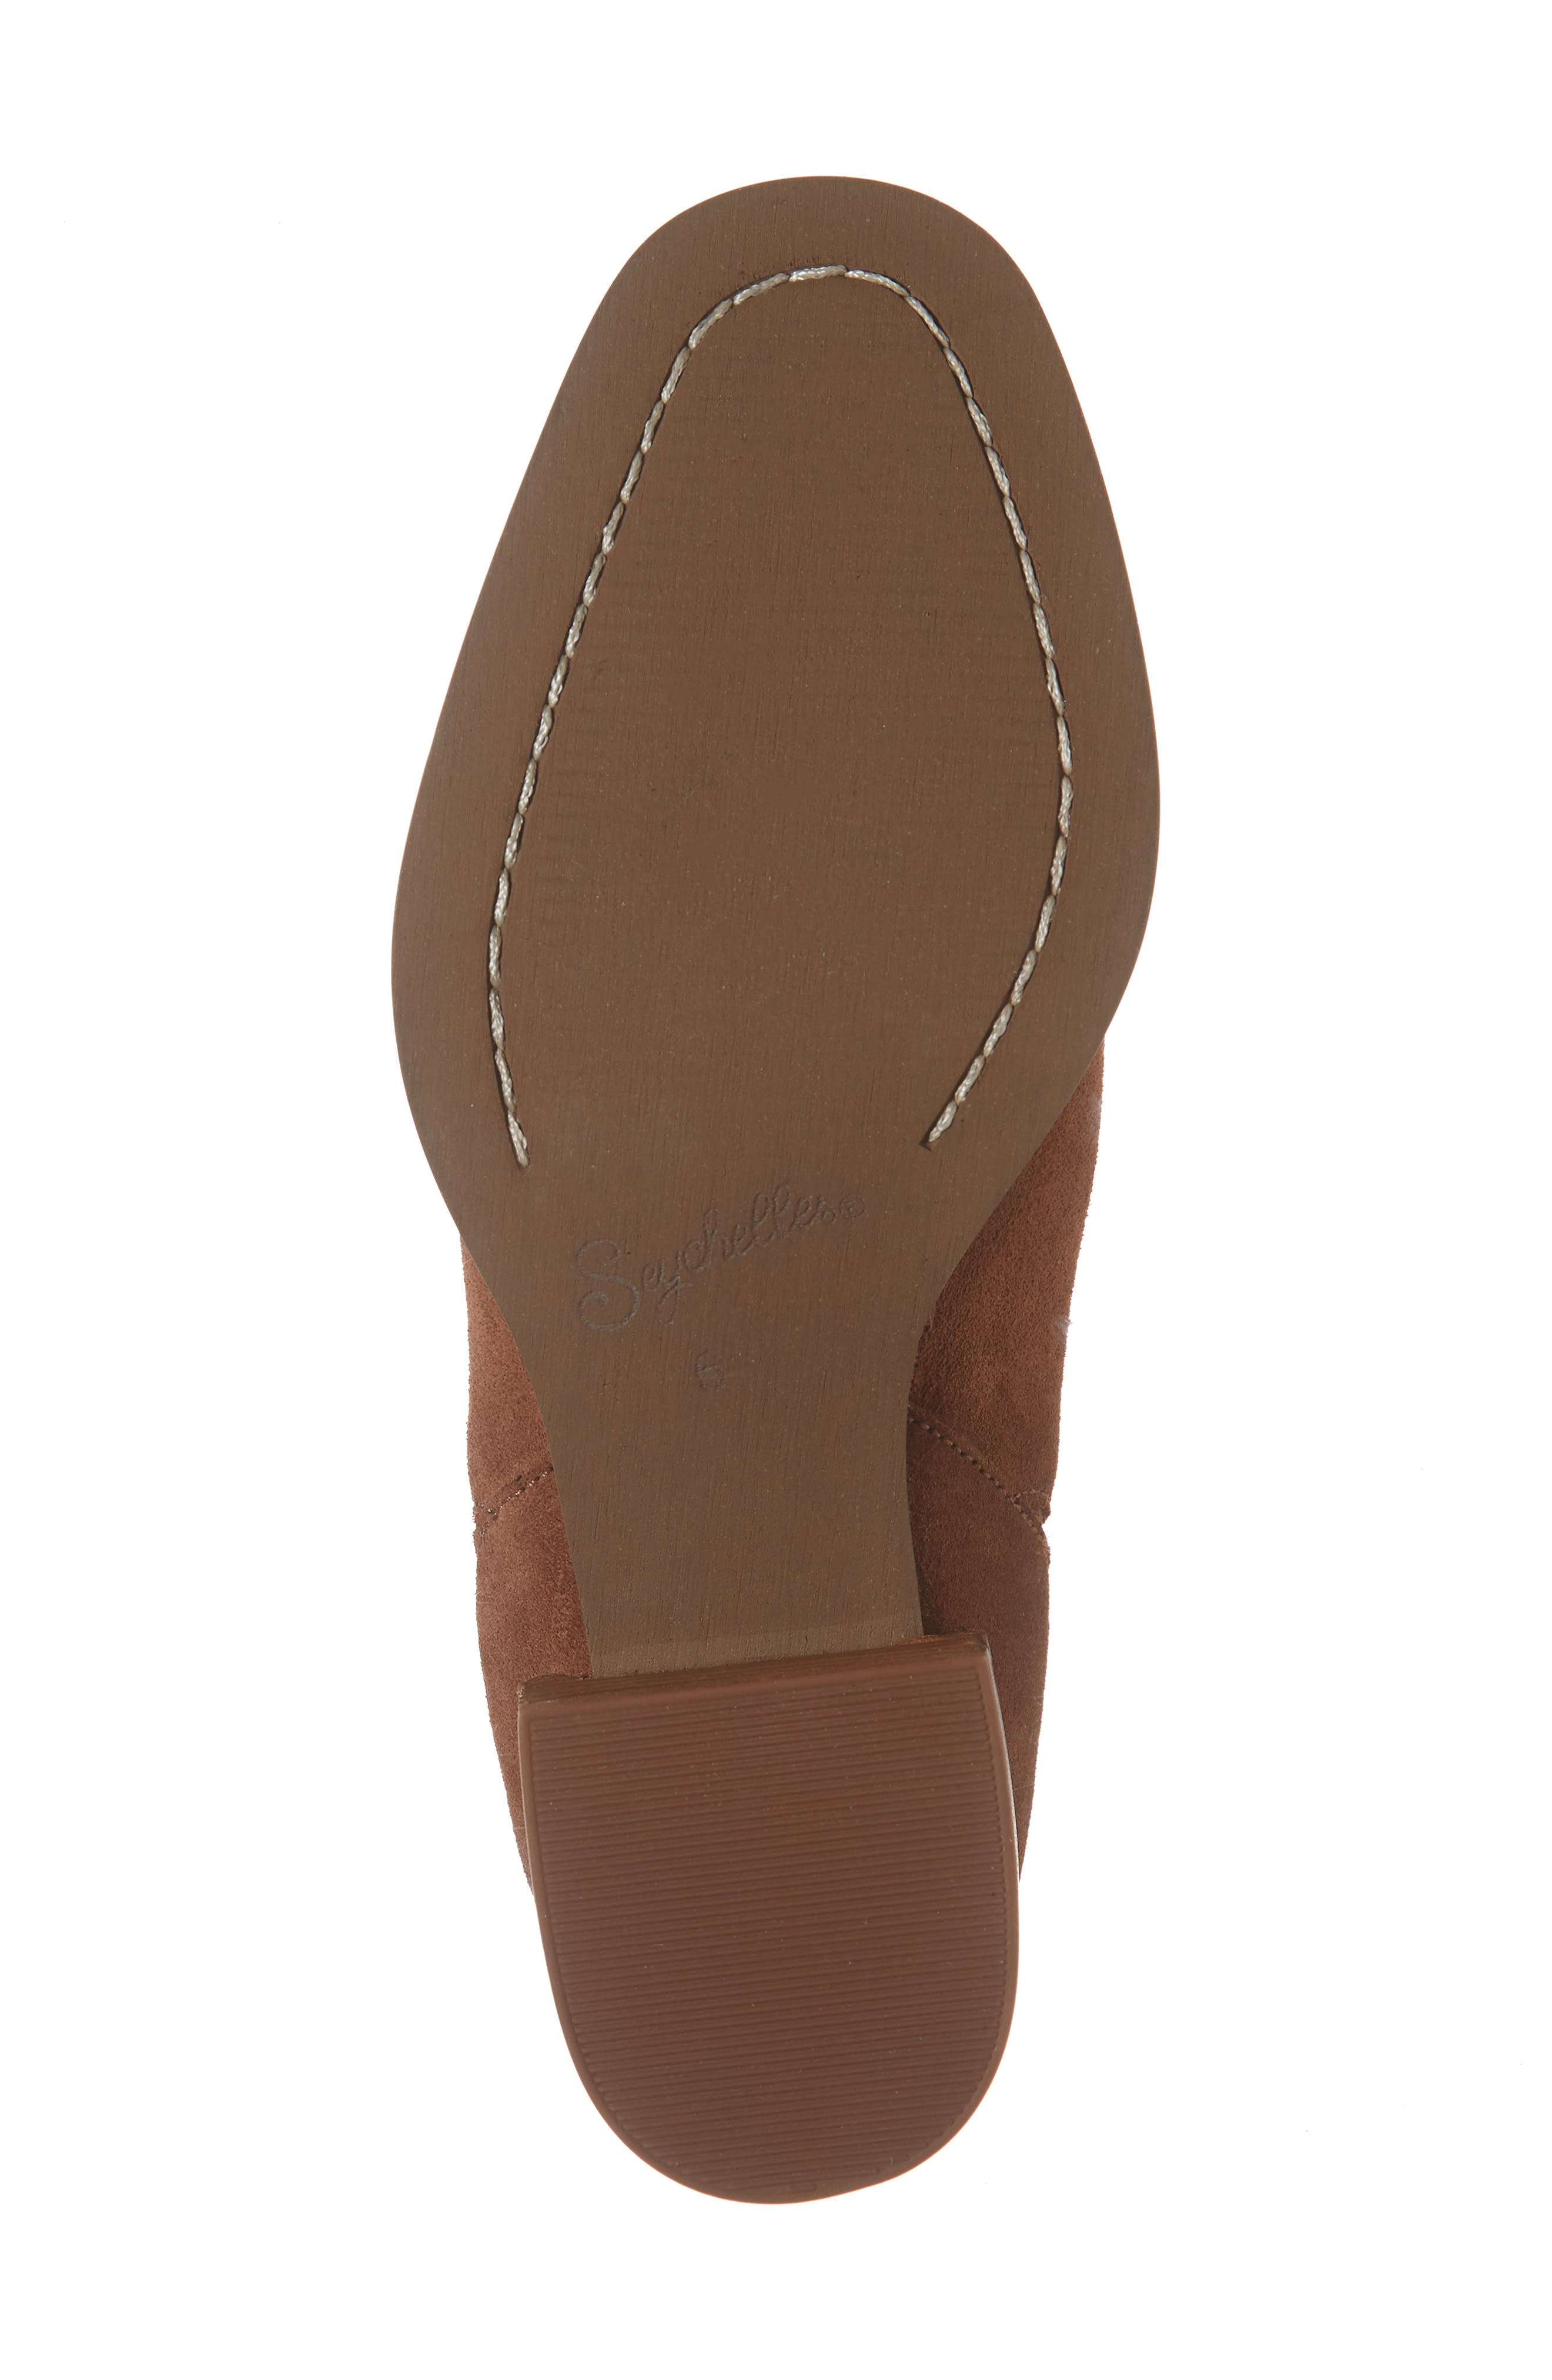 Offstage Boot,                             Alternate thumbnail 6, color,                             COGNAC SUEDE